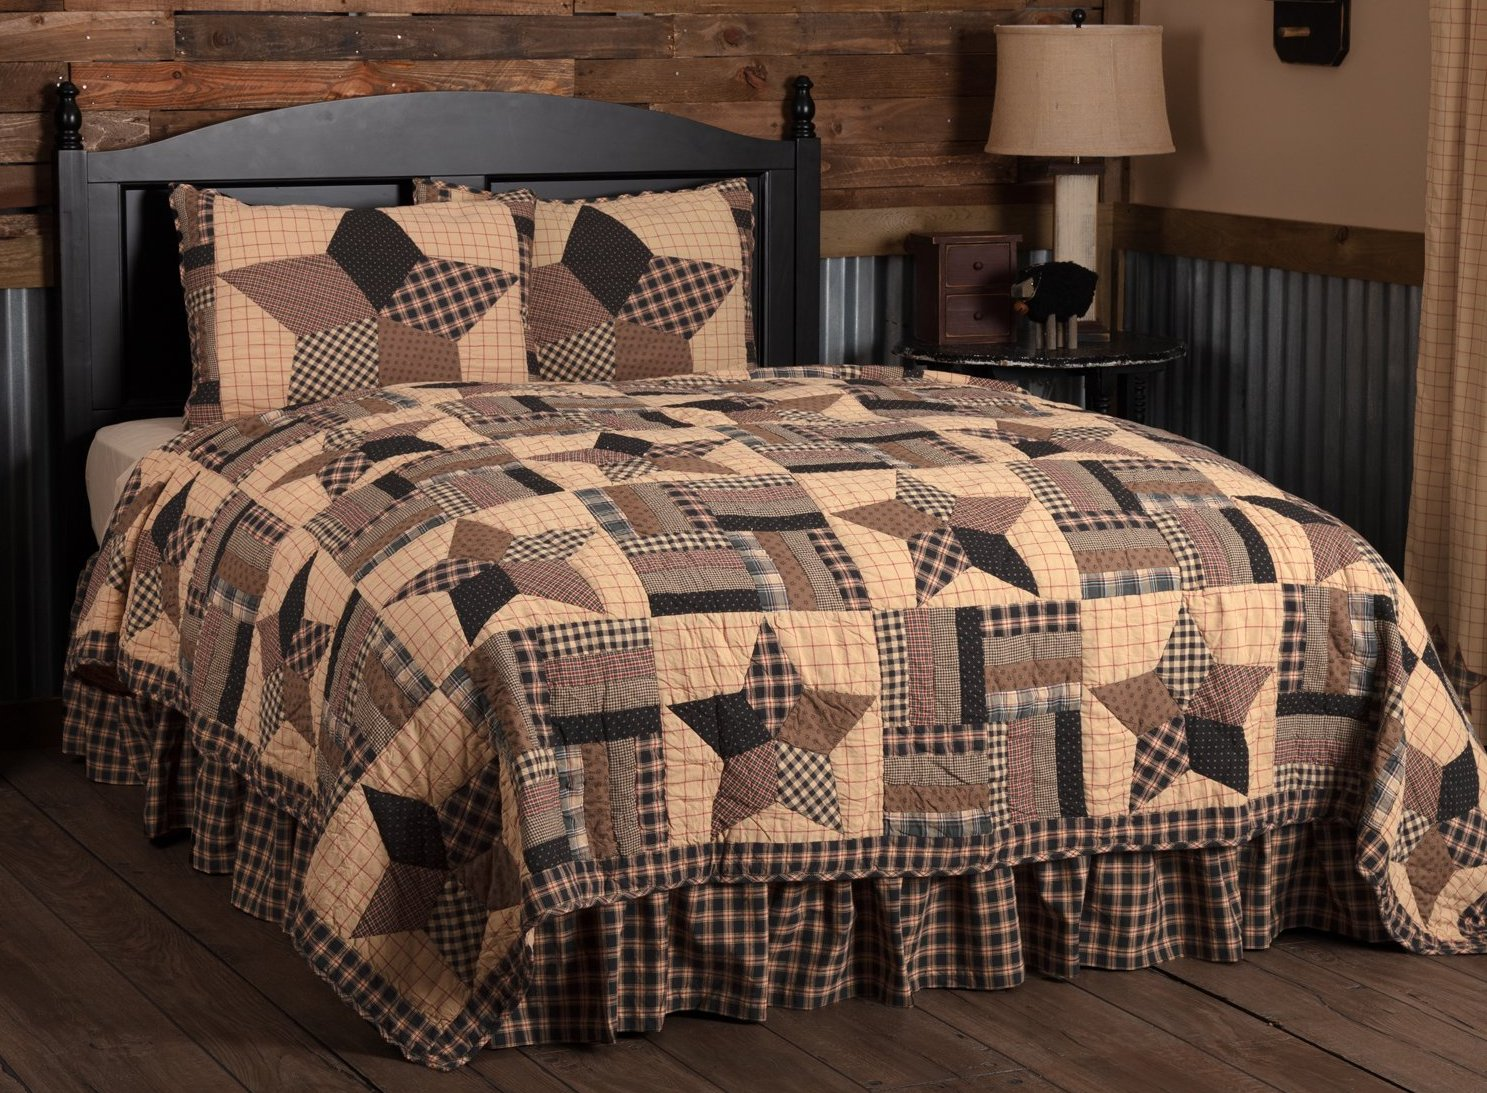 Bingham Star California King Quilt Set 1 Quilt And 2 Shams Allysons Place